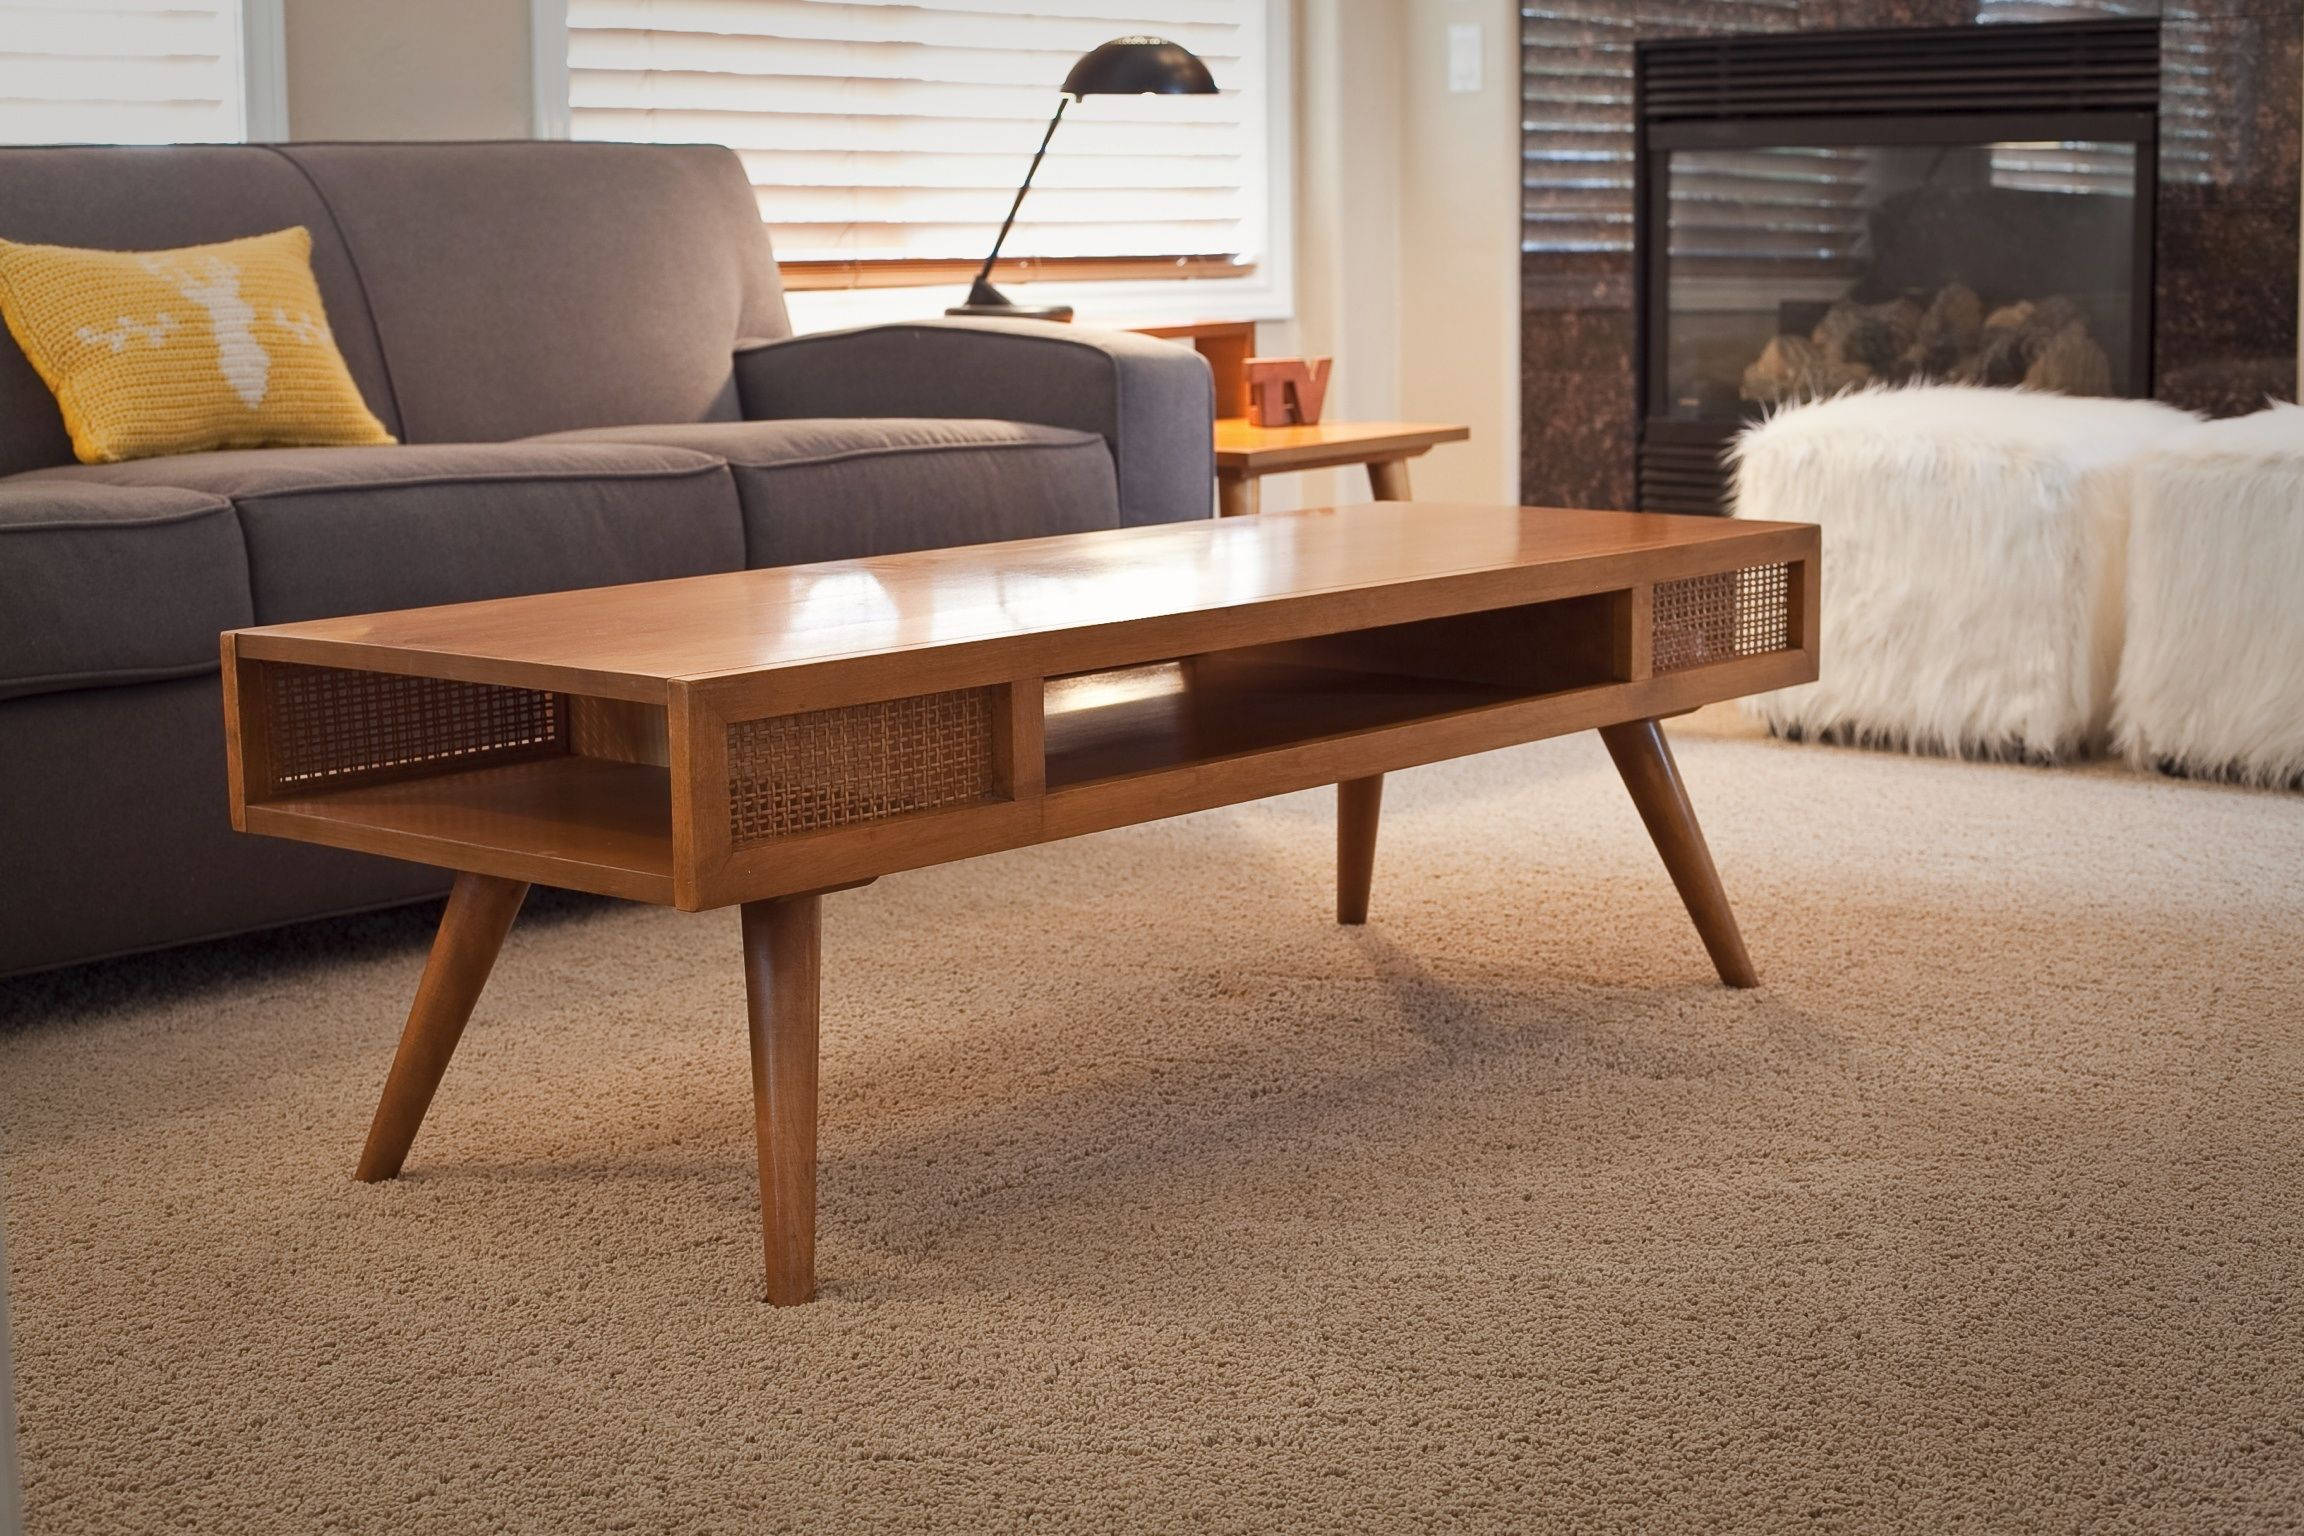 Russel Wright For Conant Ball Coffee Table.